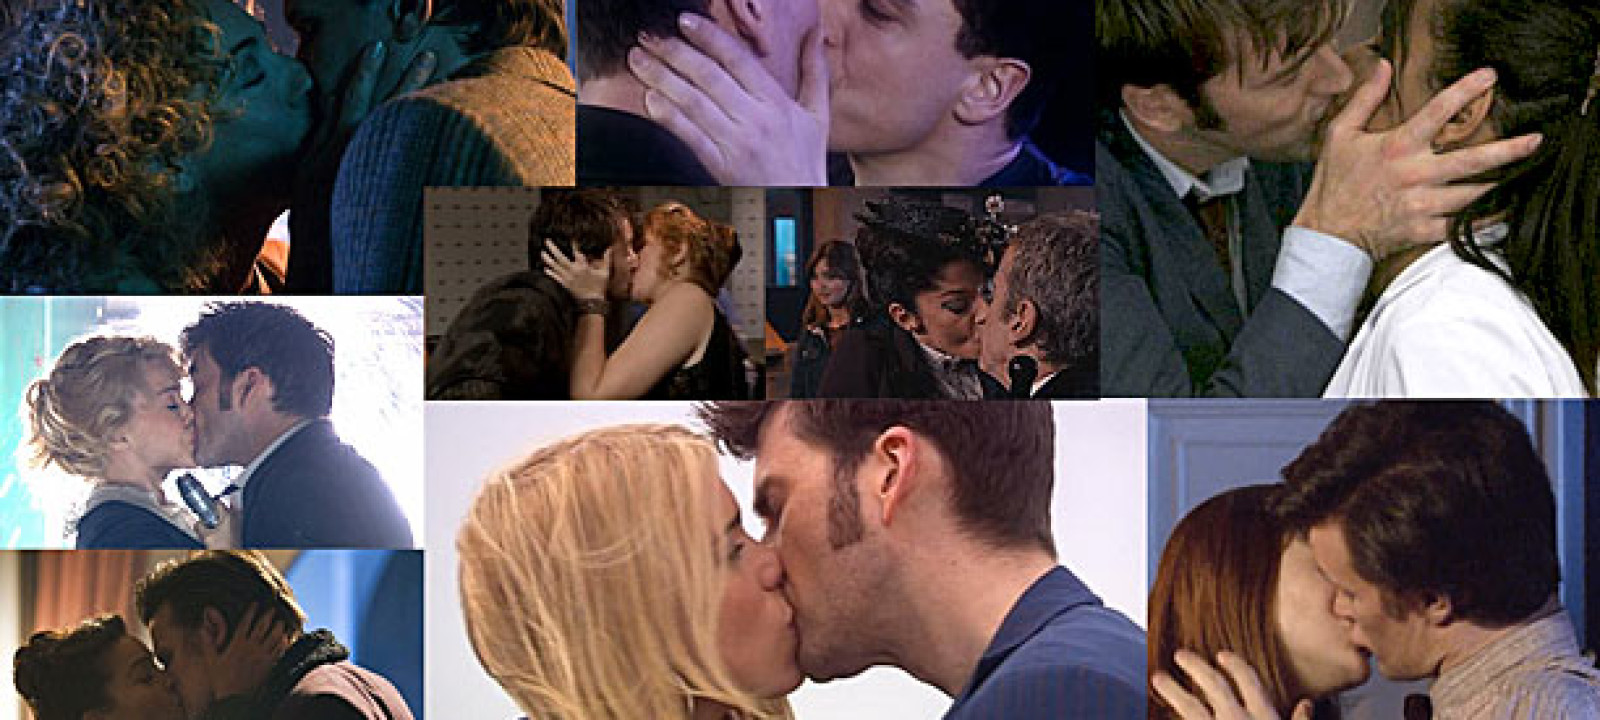 Doctor Who kissing